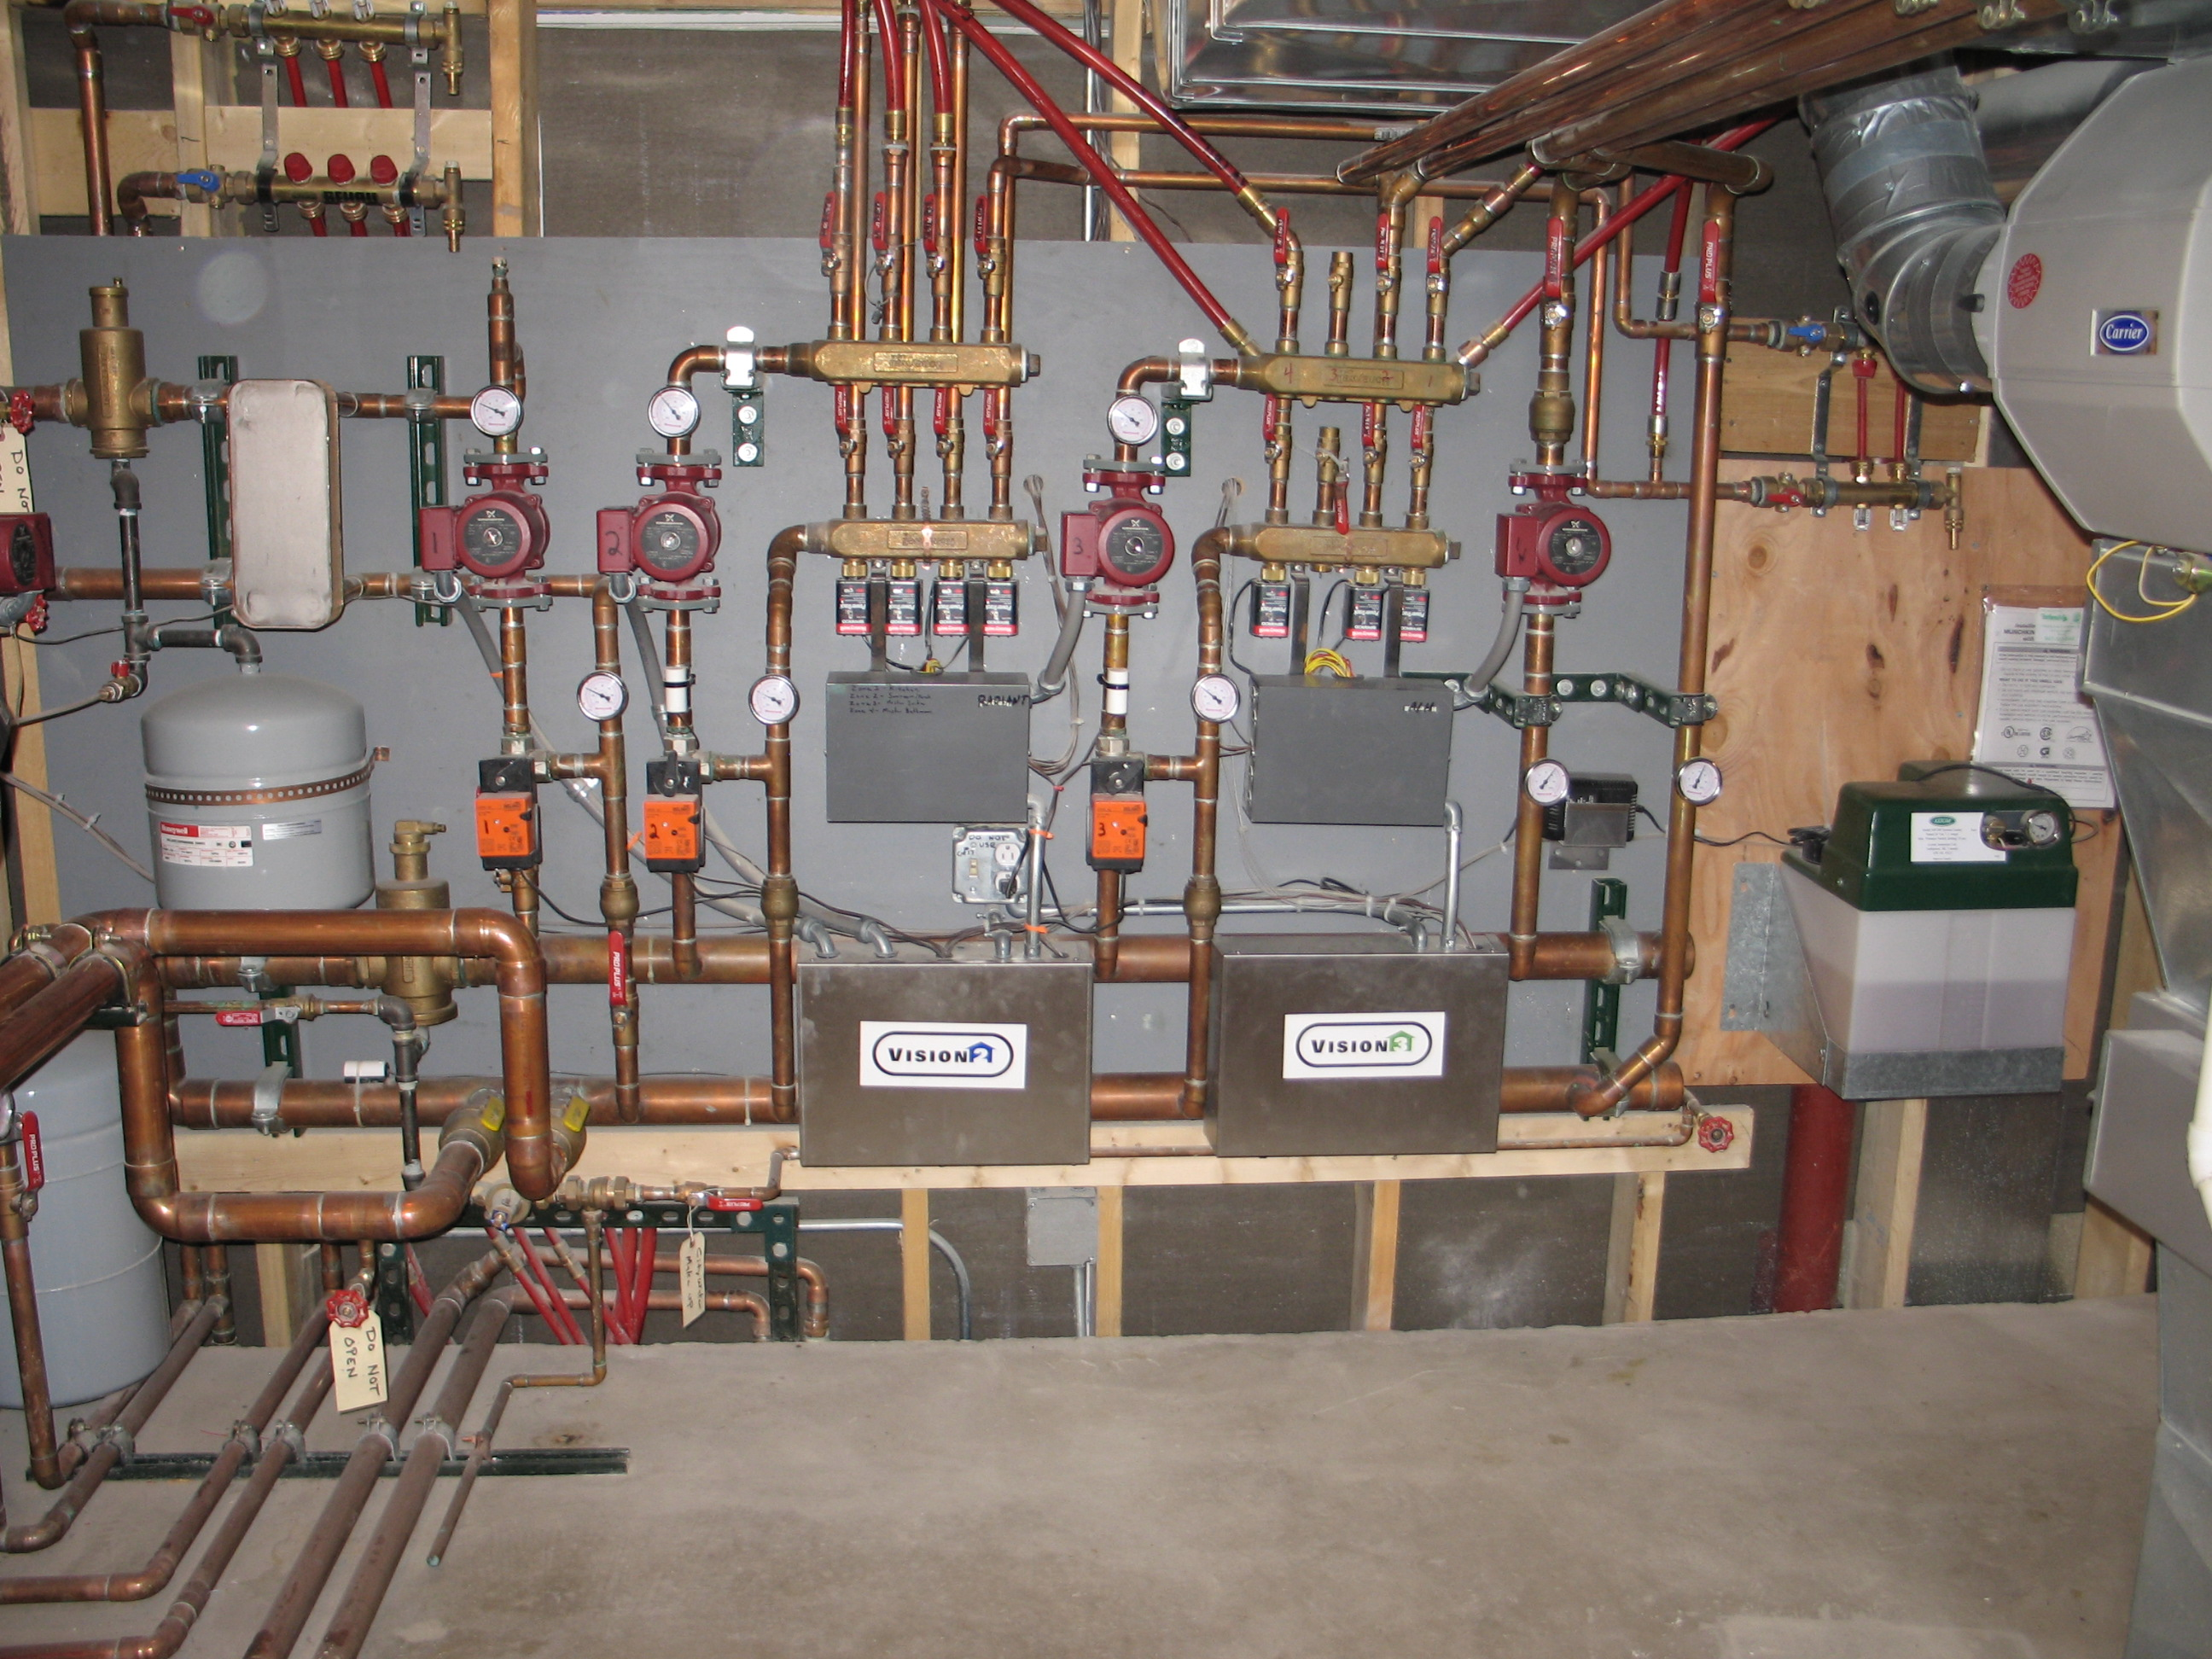 Ireland Heating & Air Conditioning Company Lake Forest IL 60045  #A35228